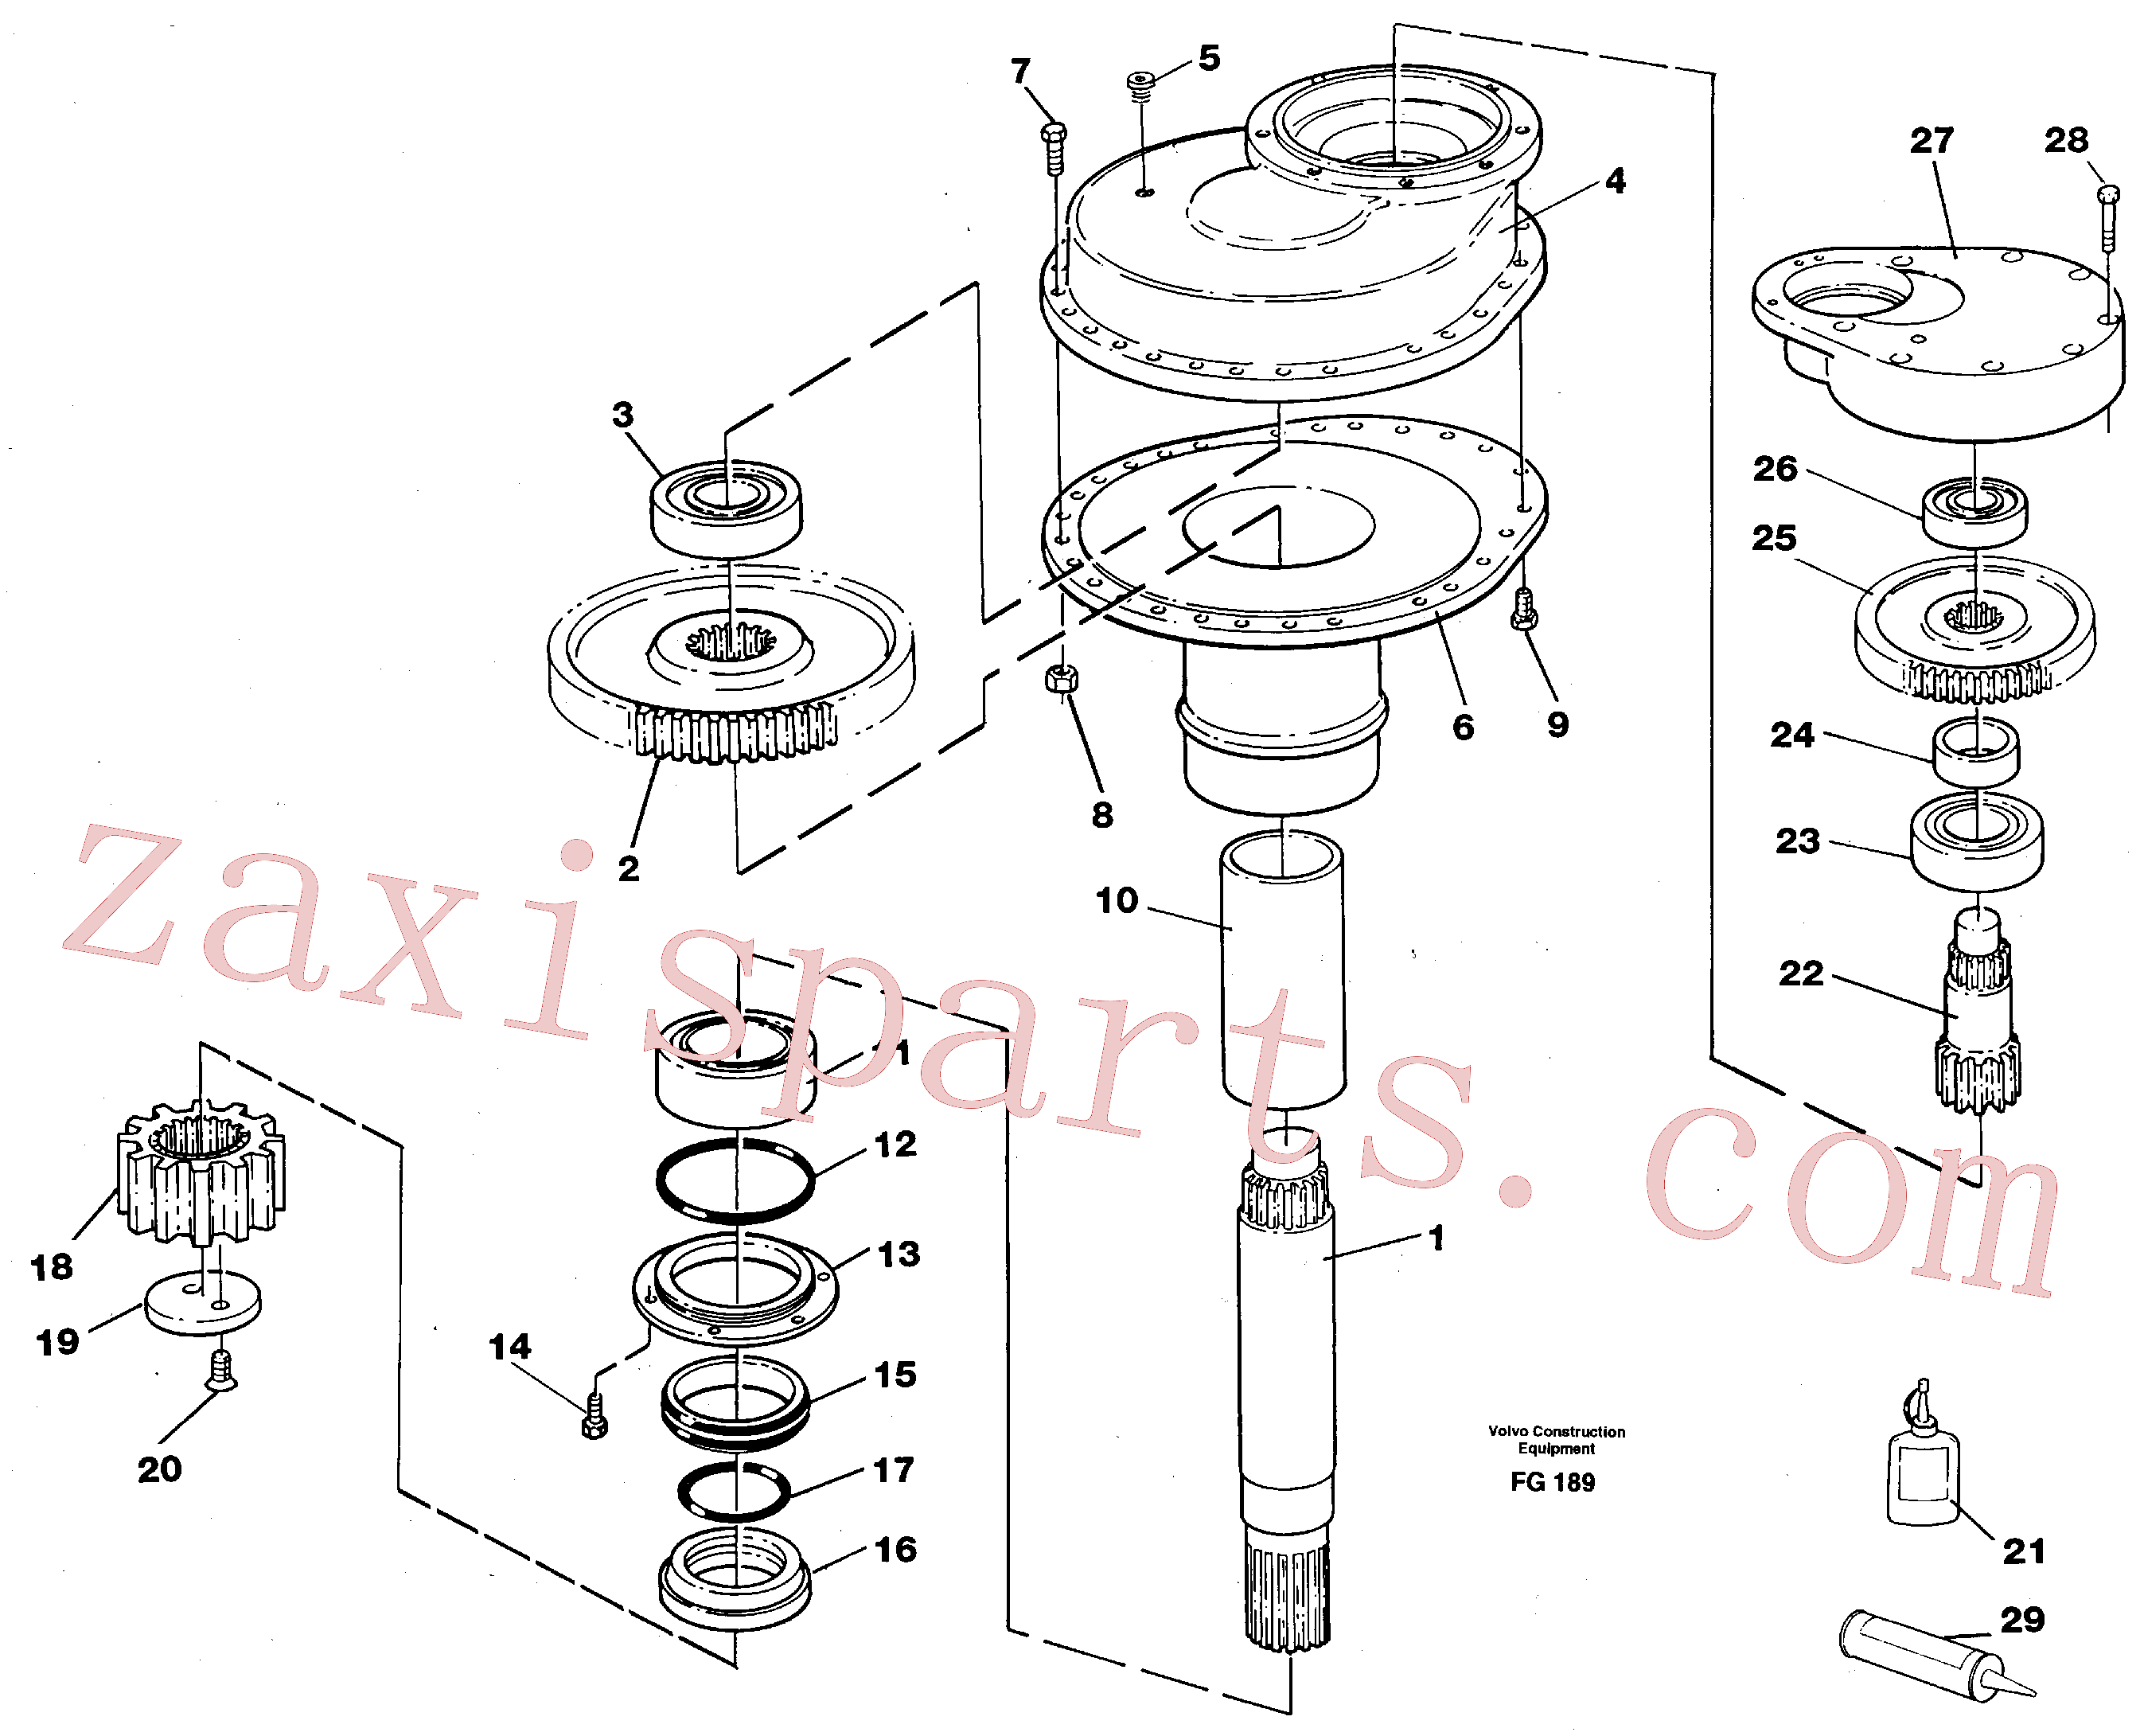 VOE14014695 for Volvo Swing gearbox(FG189 assembly)